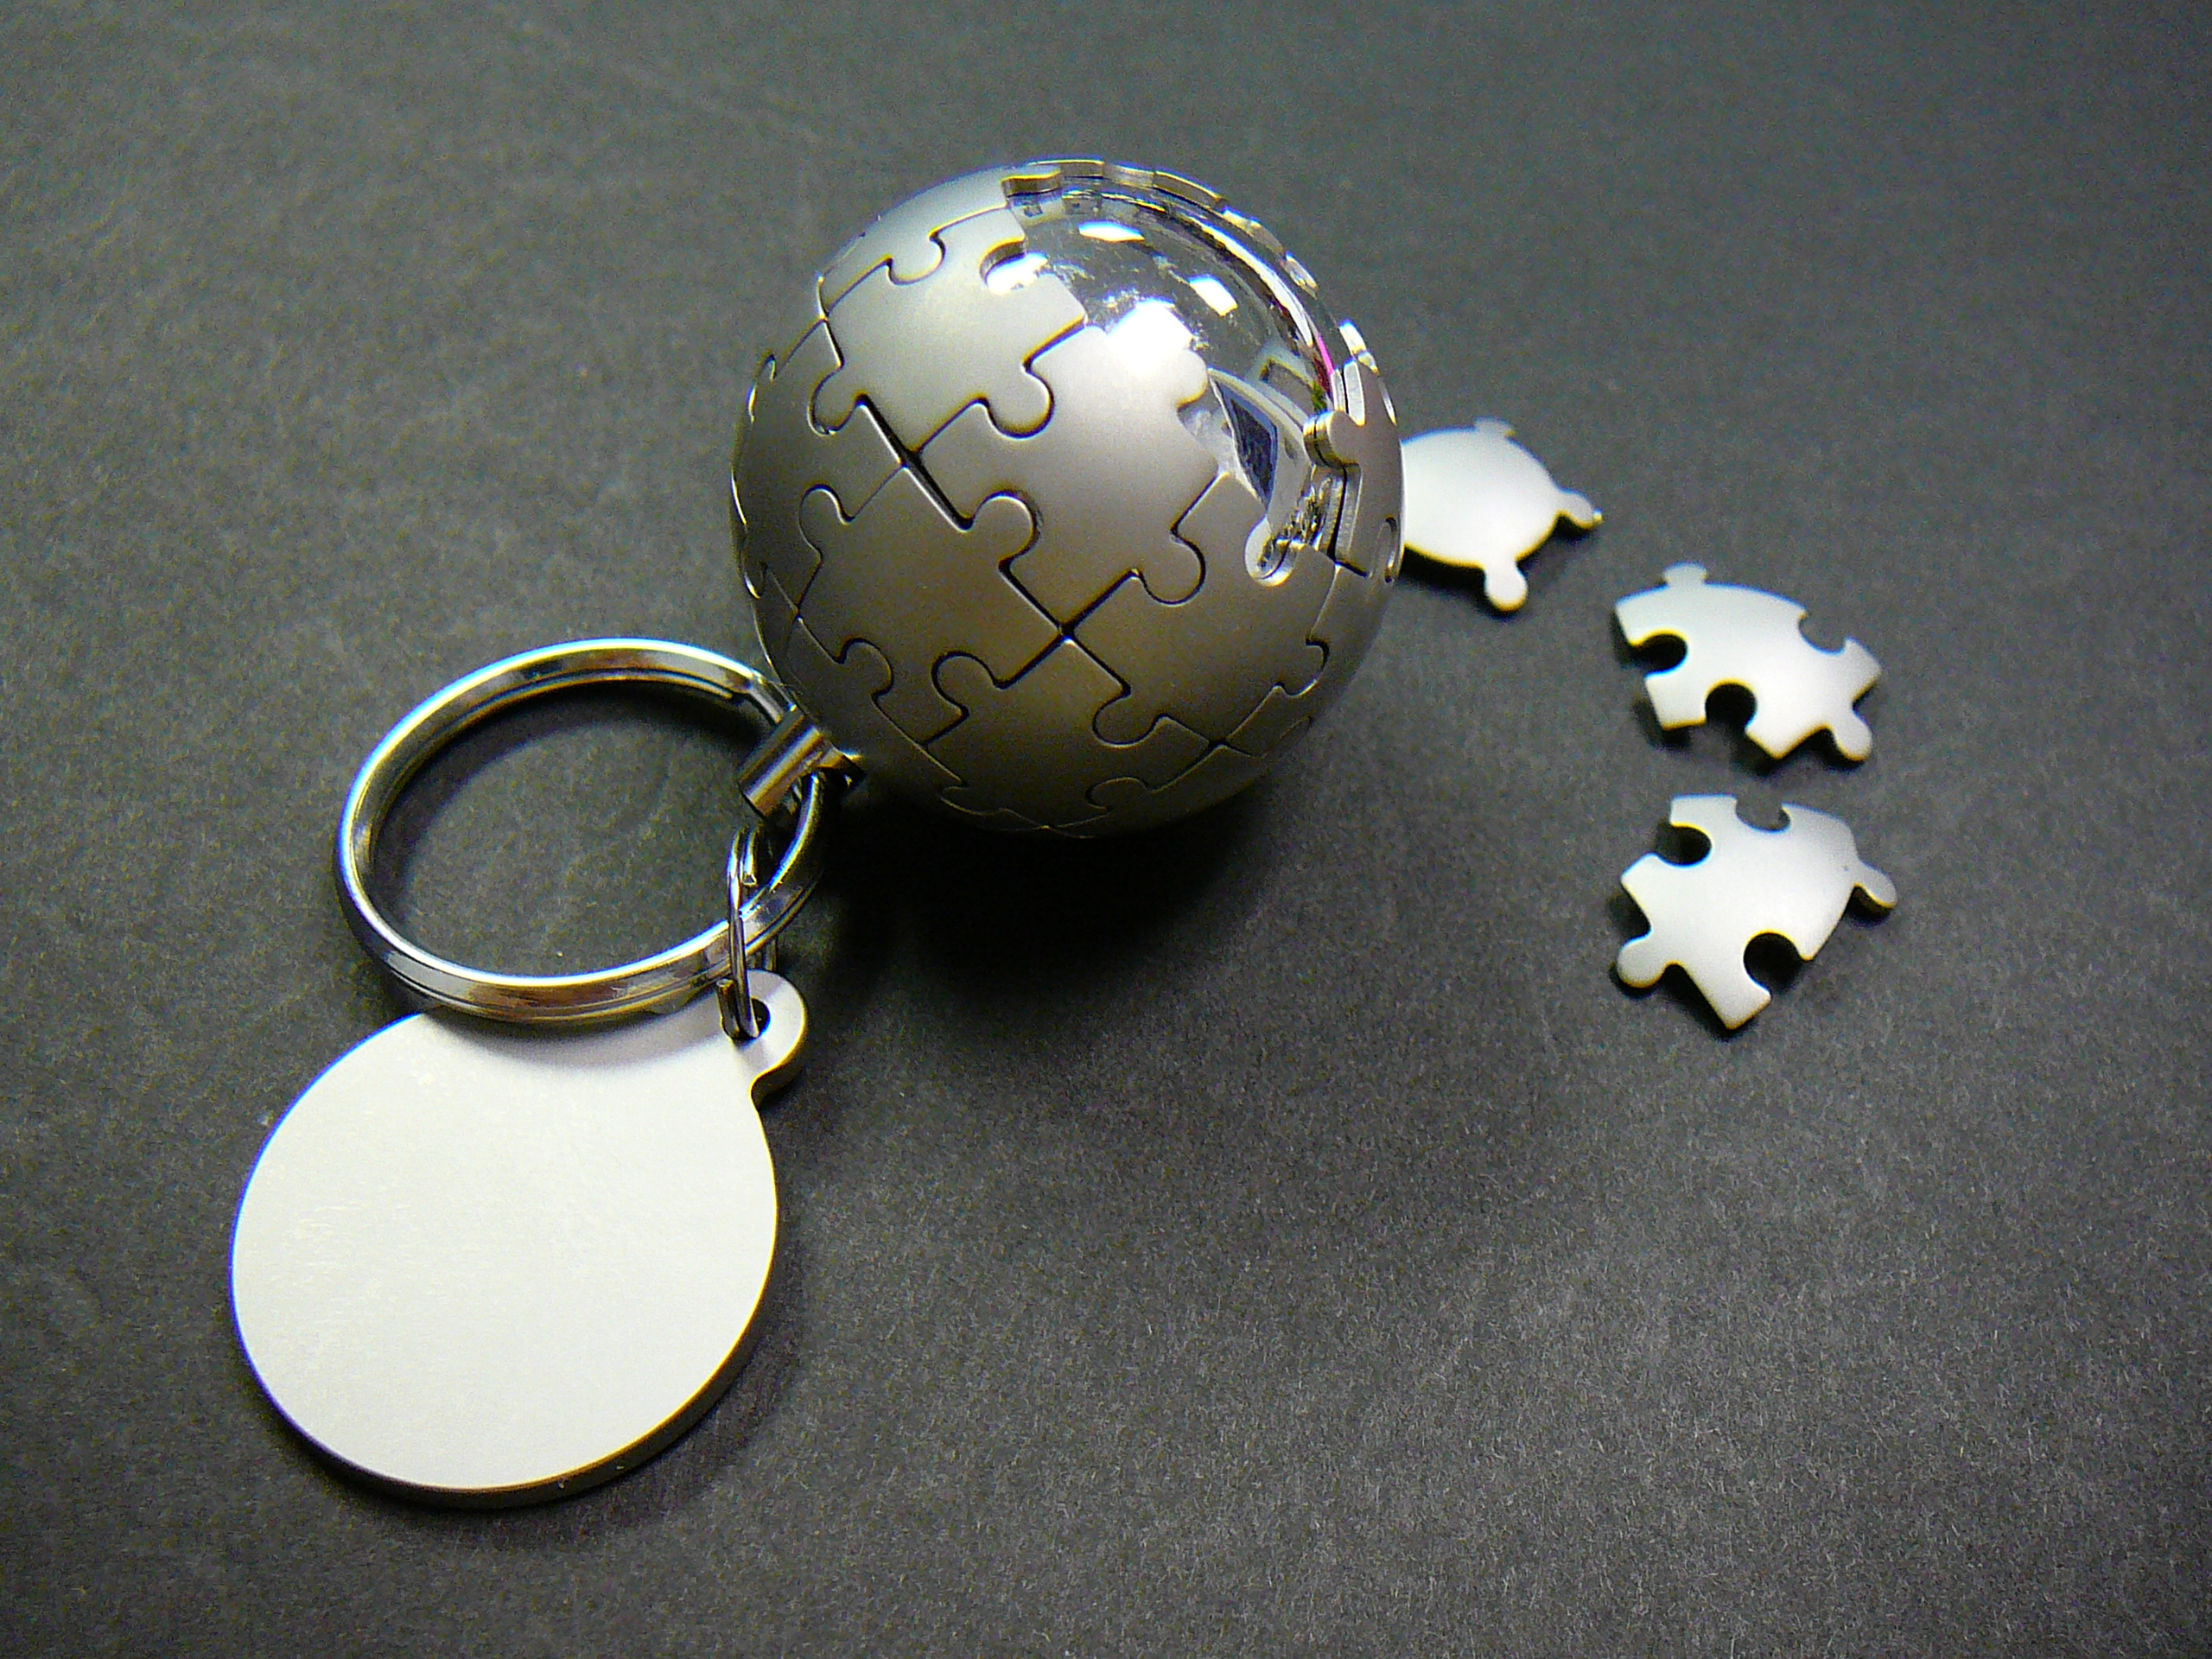 All sizes | Wikipedia globe in a keychain! | Flickr - Photo Sharing!